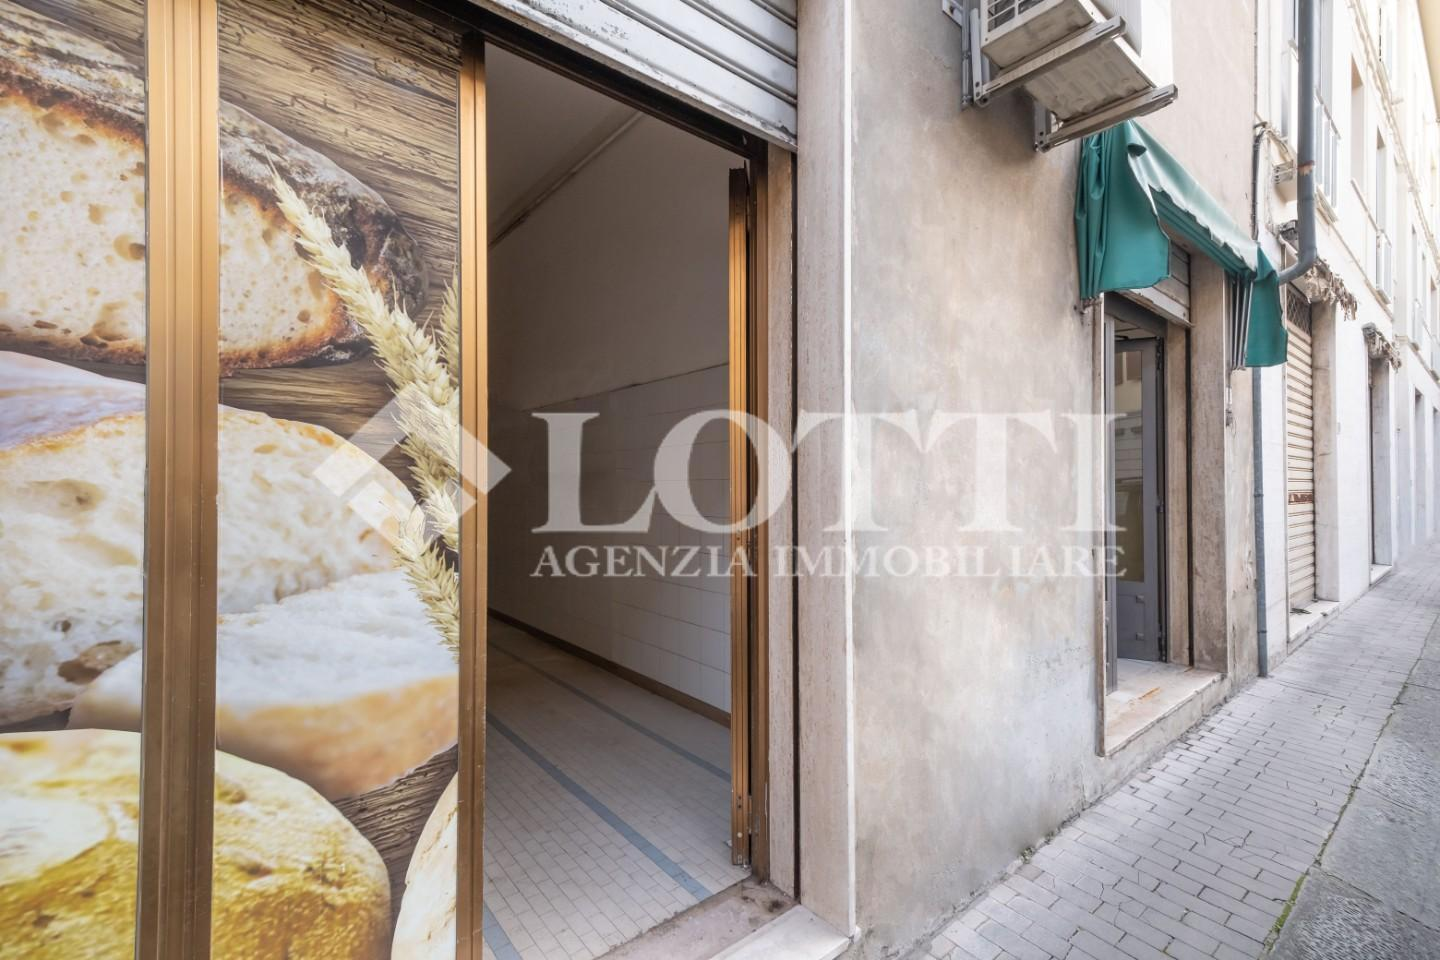 Business mall for sale in Pontedera (PI)